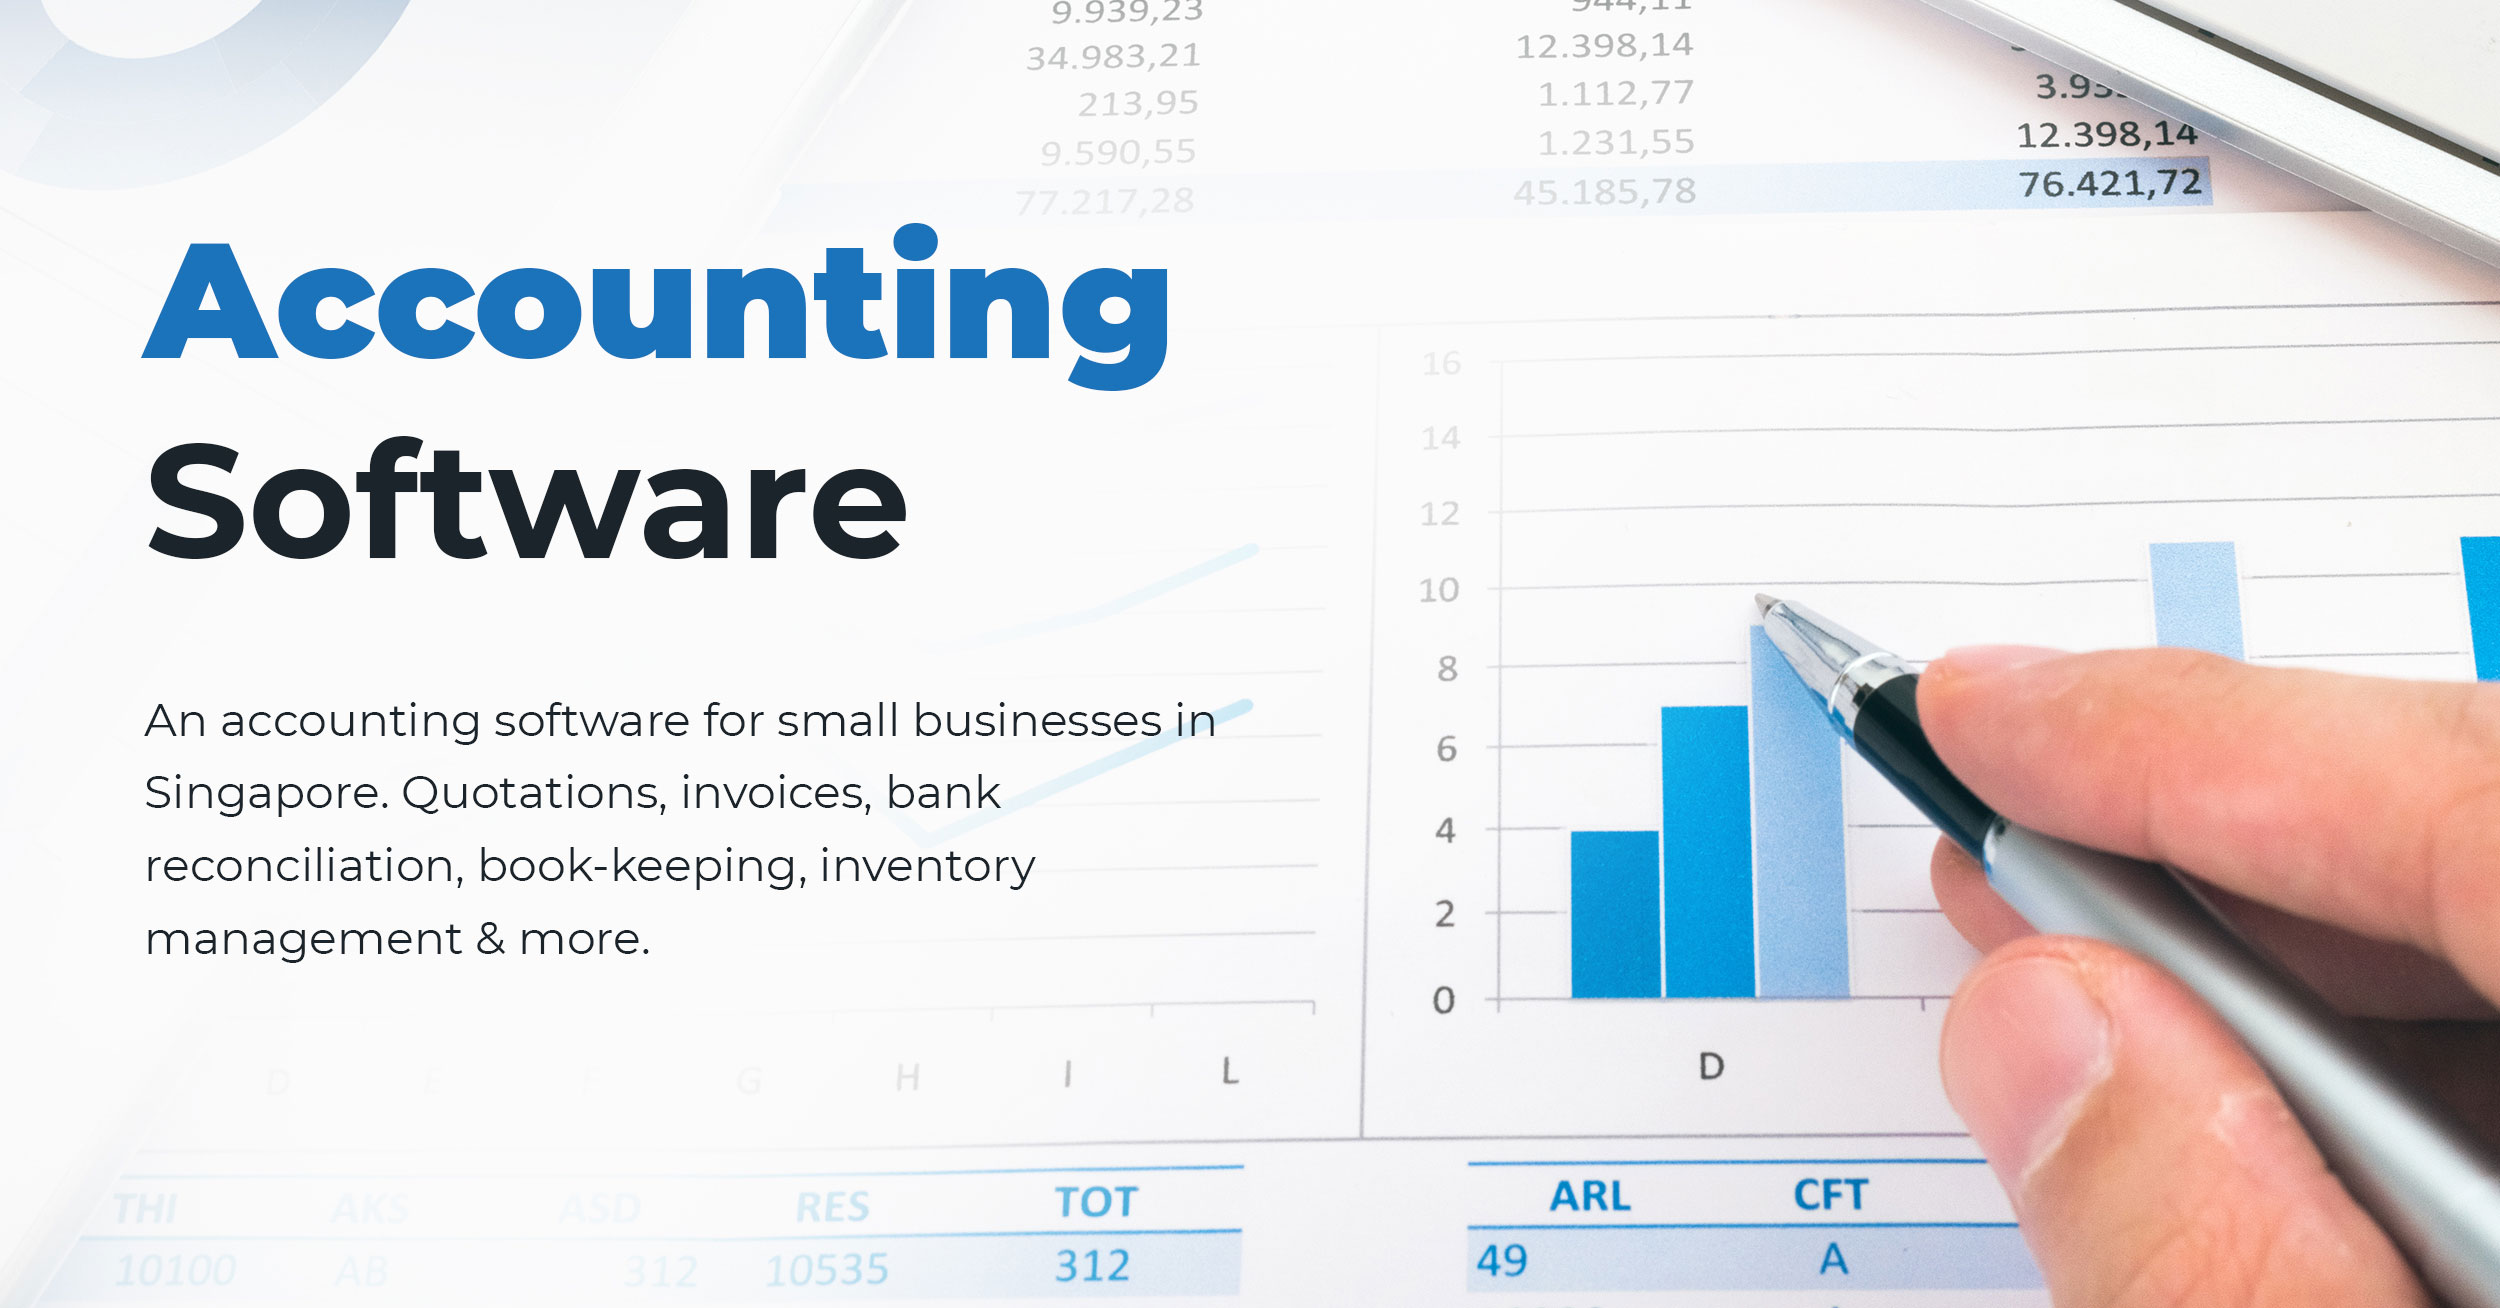 Accounting Software - up to 80% PSG Grant 1